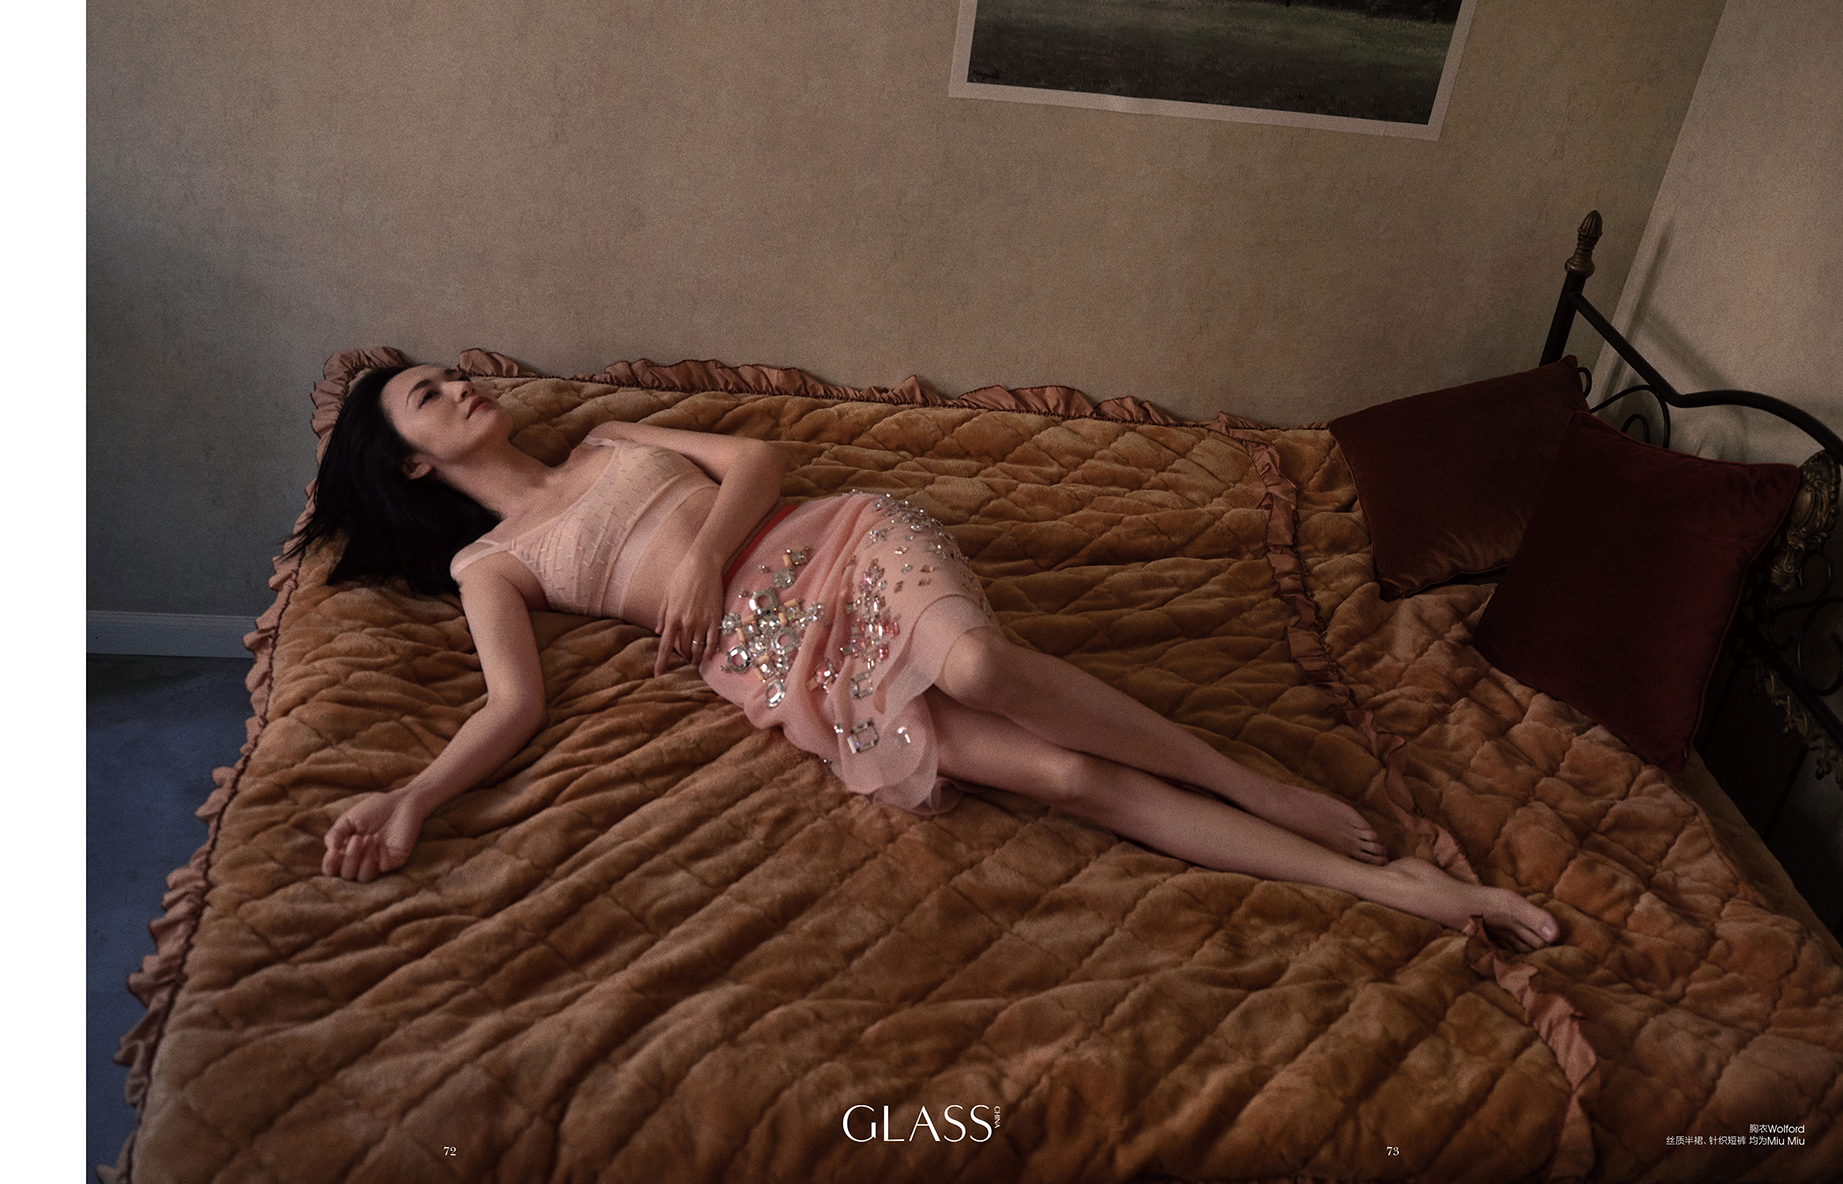 Actress Yao Chen featured in the launch issue of Glass China.